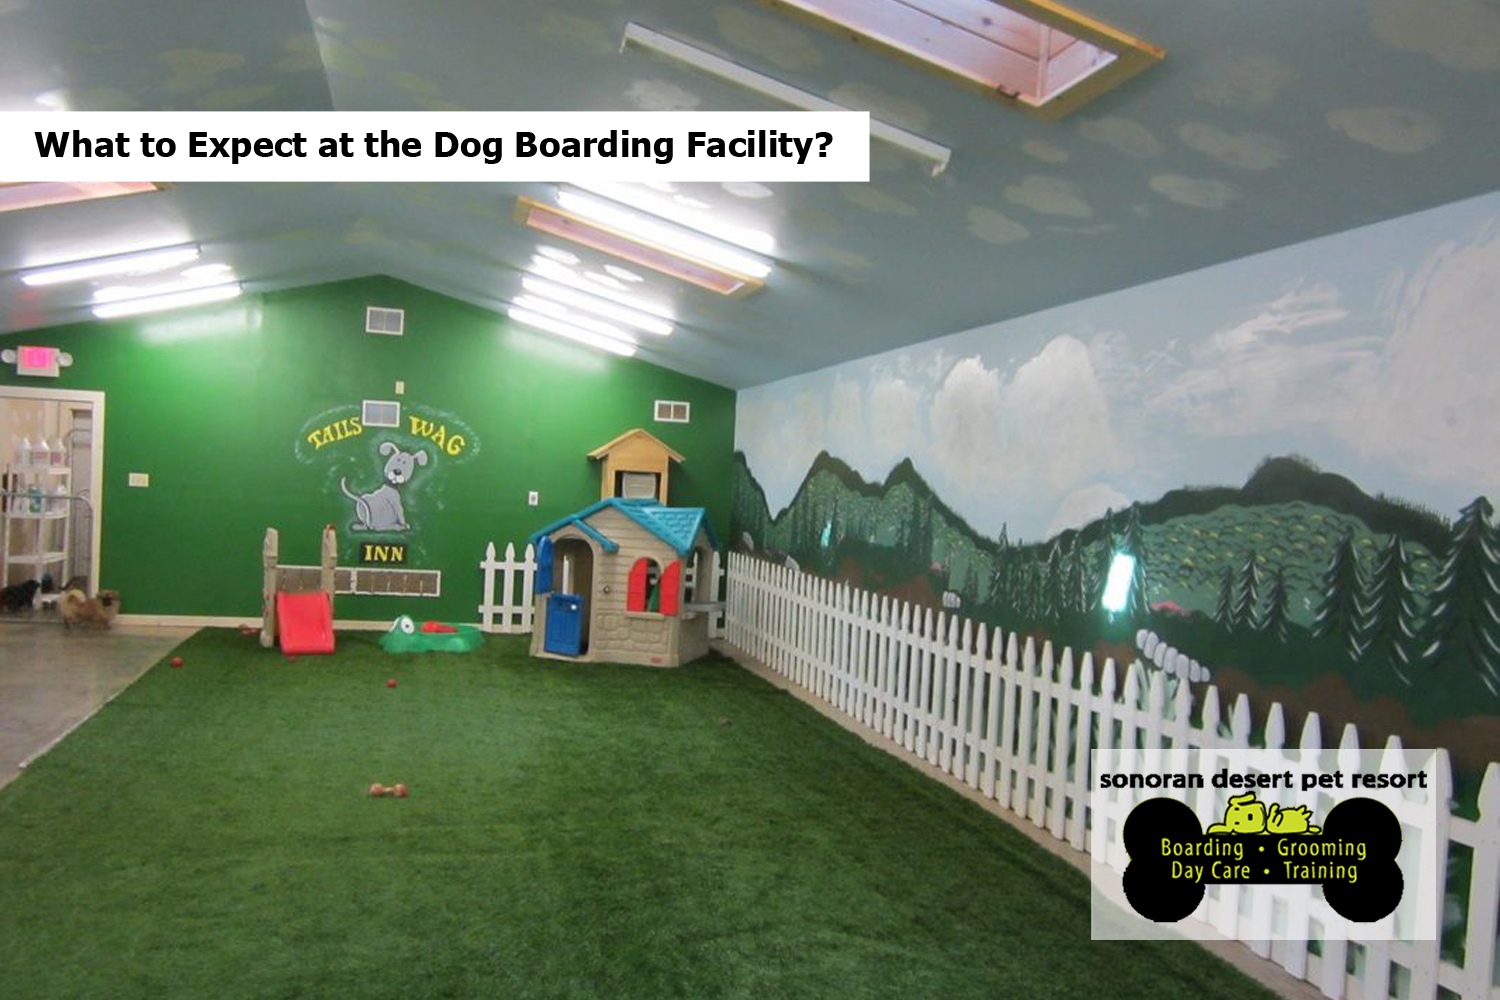 What to Expect at the Dog Boarding Facility?